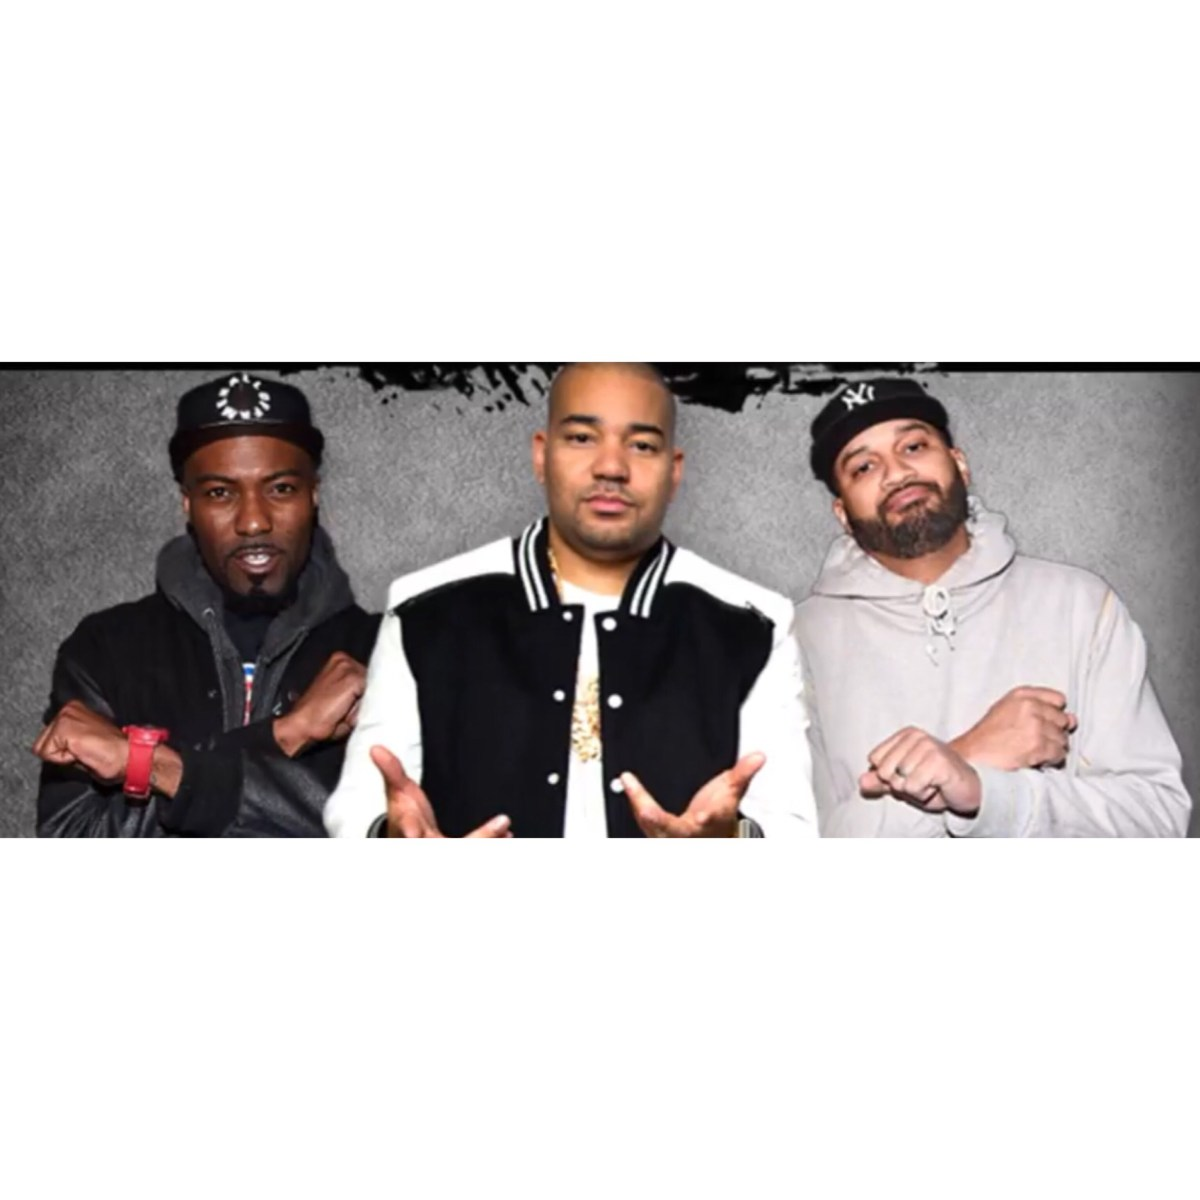 DJ Envy In Heated Breakfast Club Interview With Desus & Mero